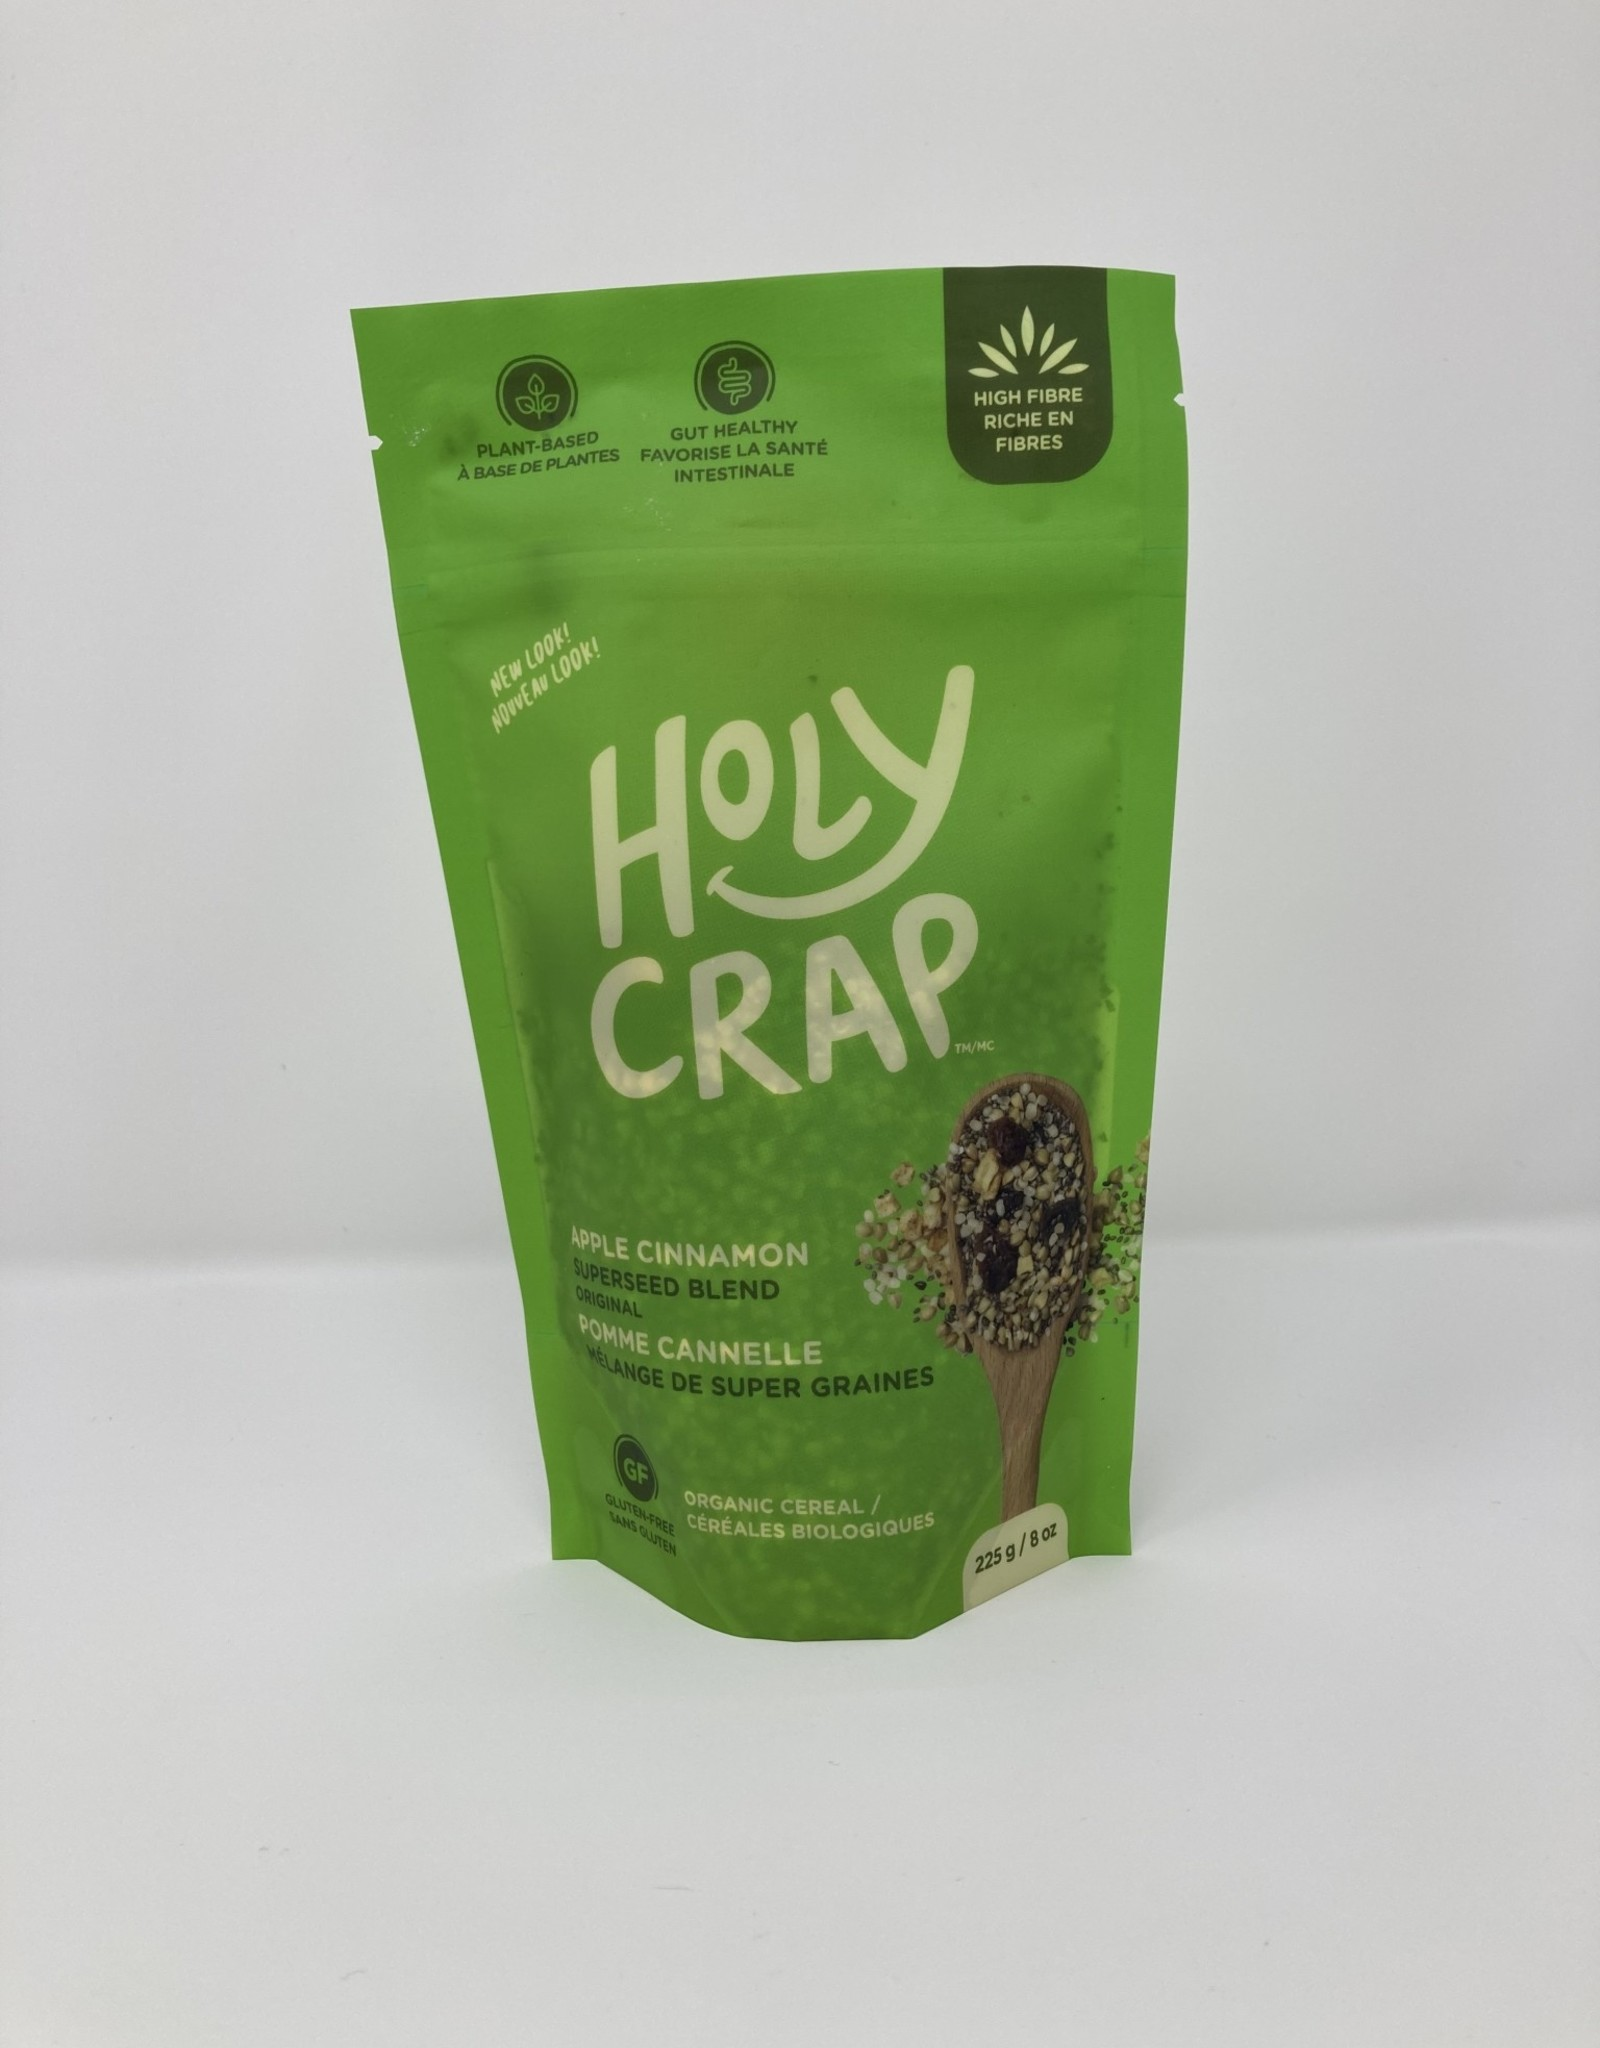 Holy Crap Holy Crap - Cereal, Apple Cinnamon Superseed